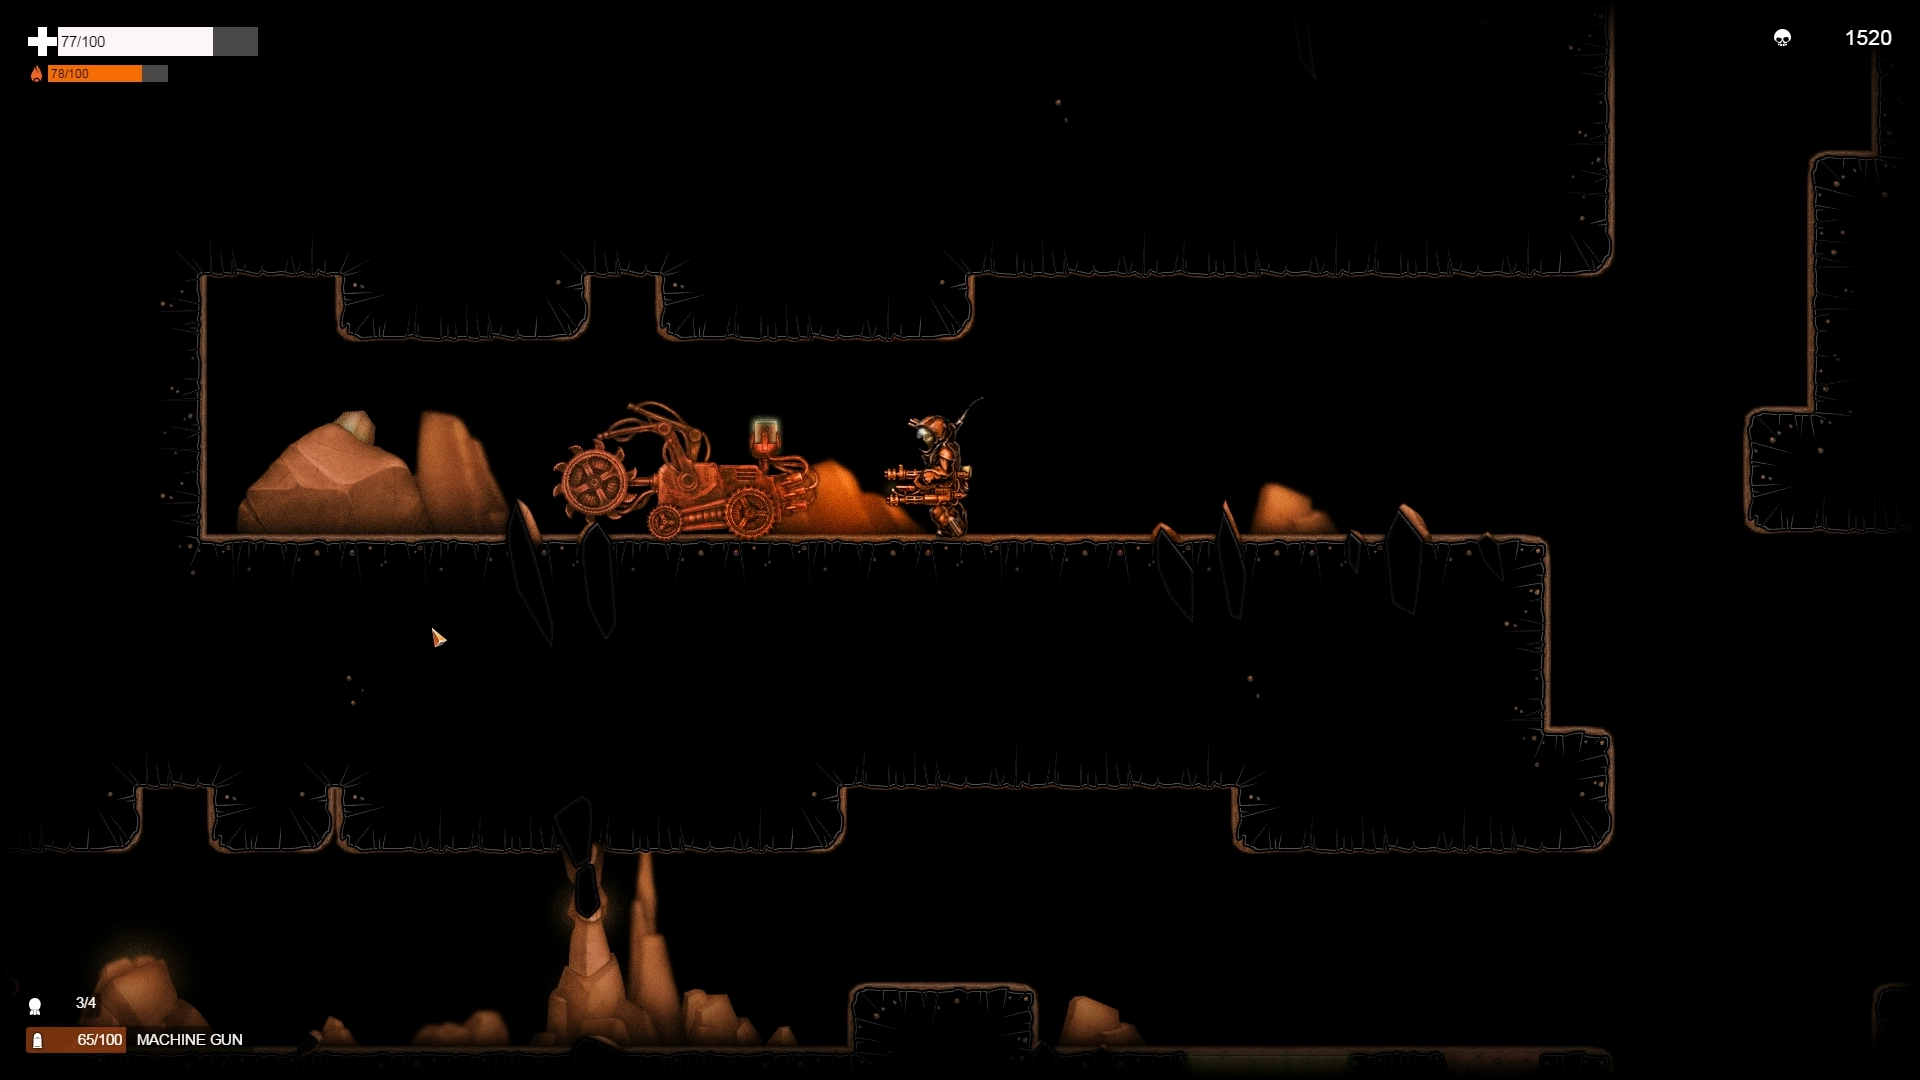 Demo contains two levels functional upgrades for 3 weapon types ammo